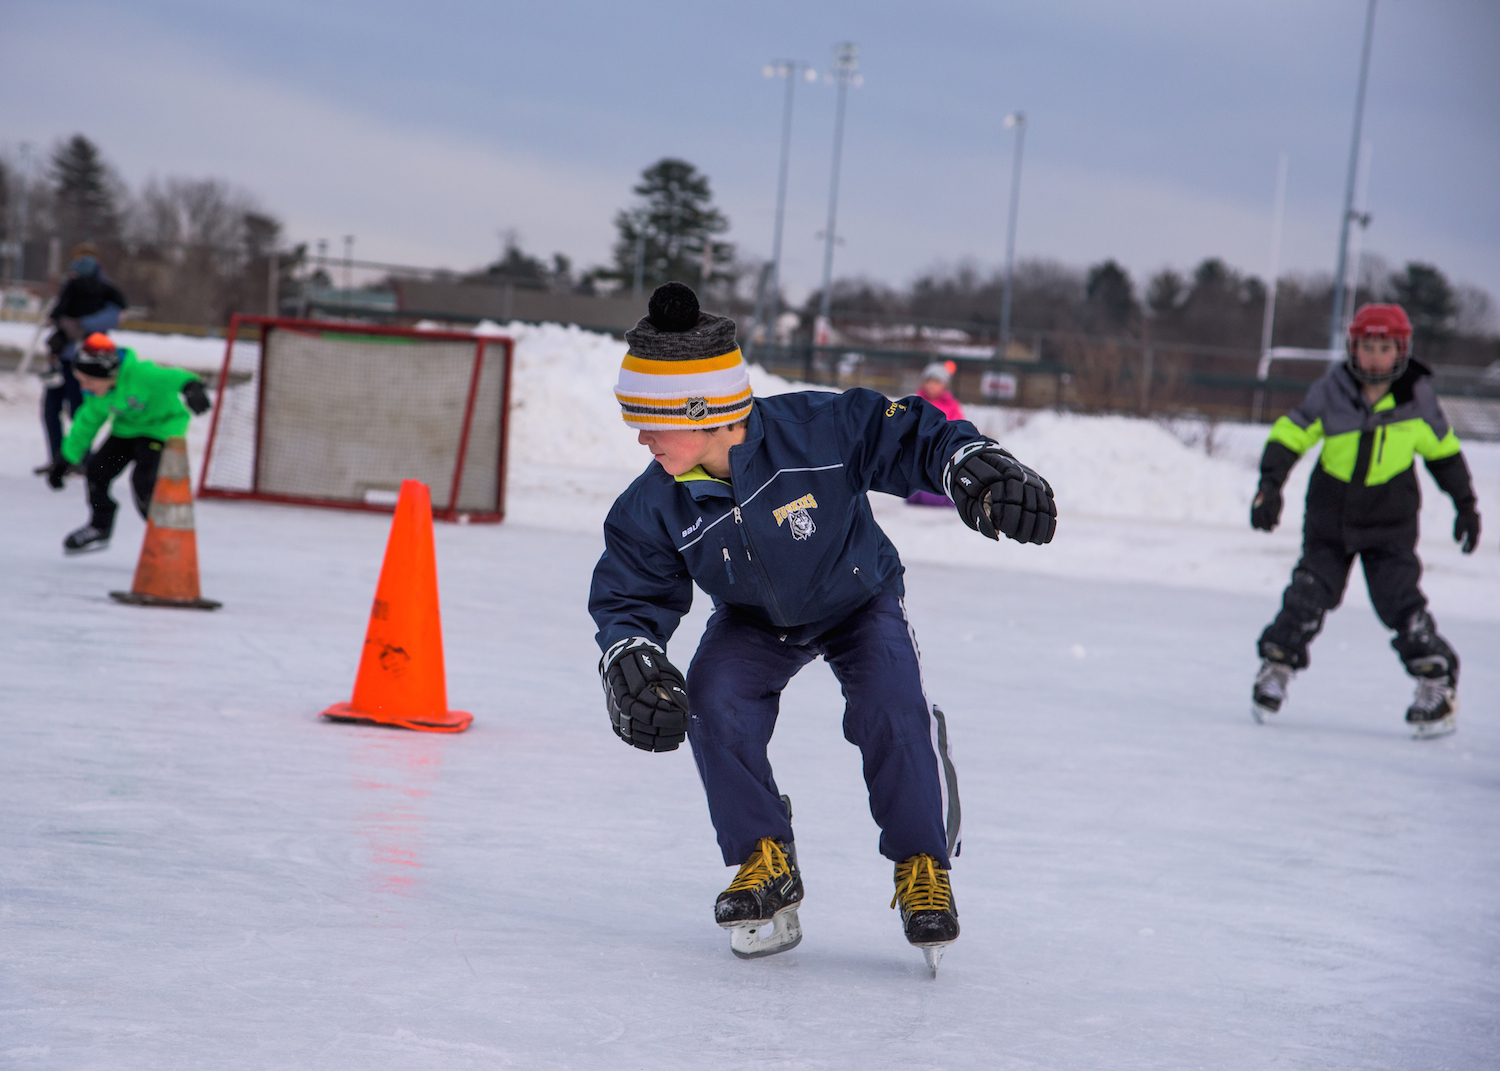 Wyatt Grondin, 9, of Scarborough competes in the Backwards Skating contest.